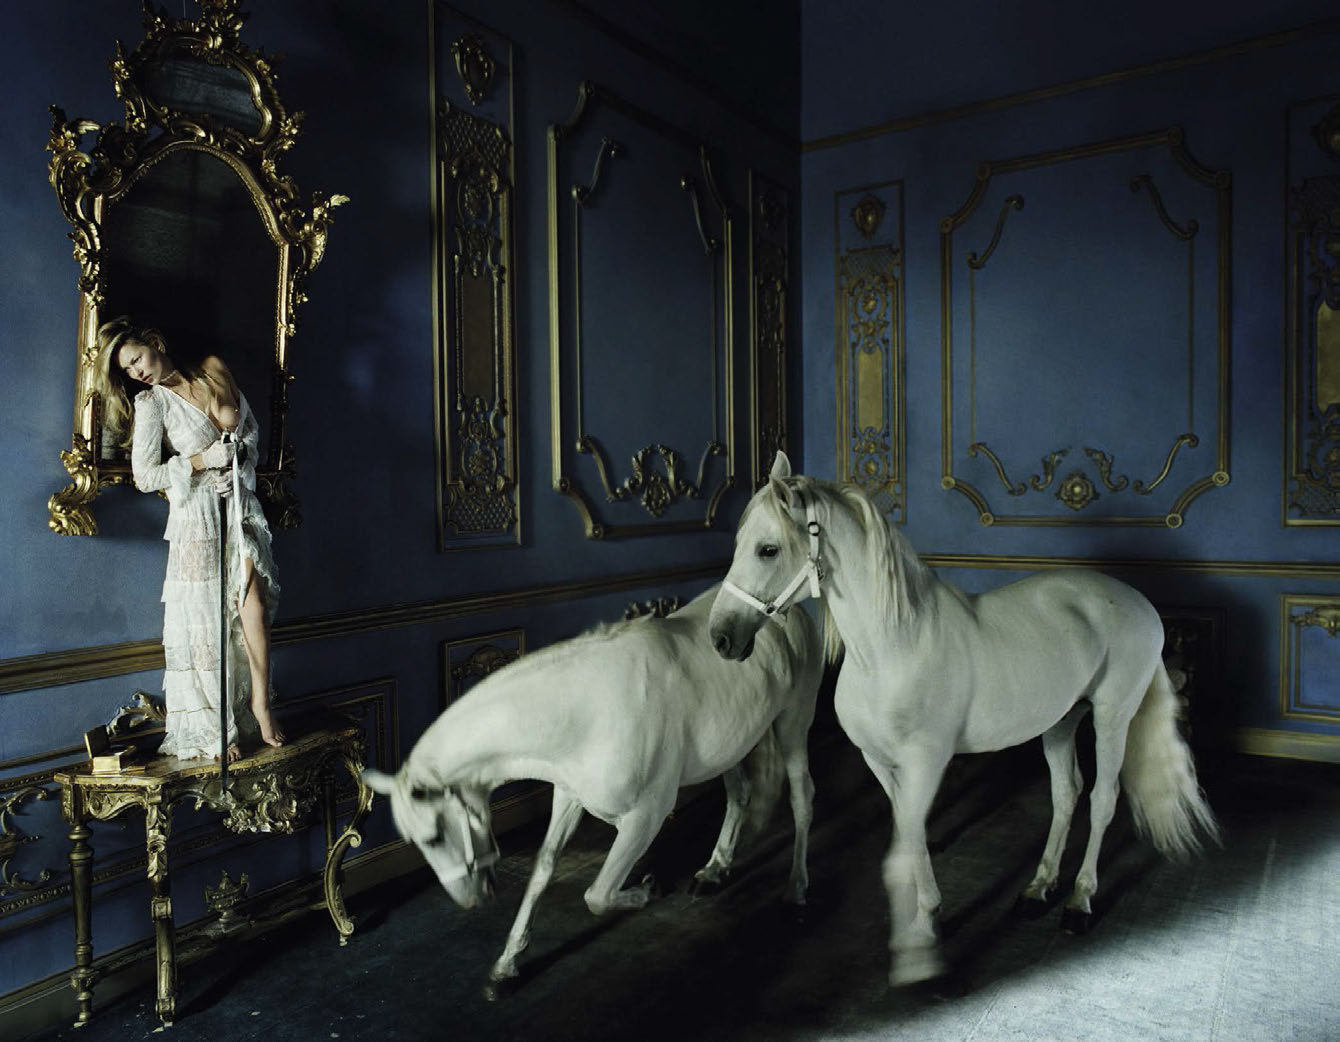 kate-moss-by-tim-walker-for-vogue-italia-december-2015-5